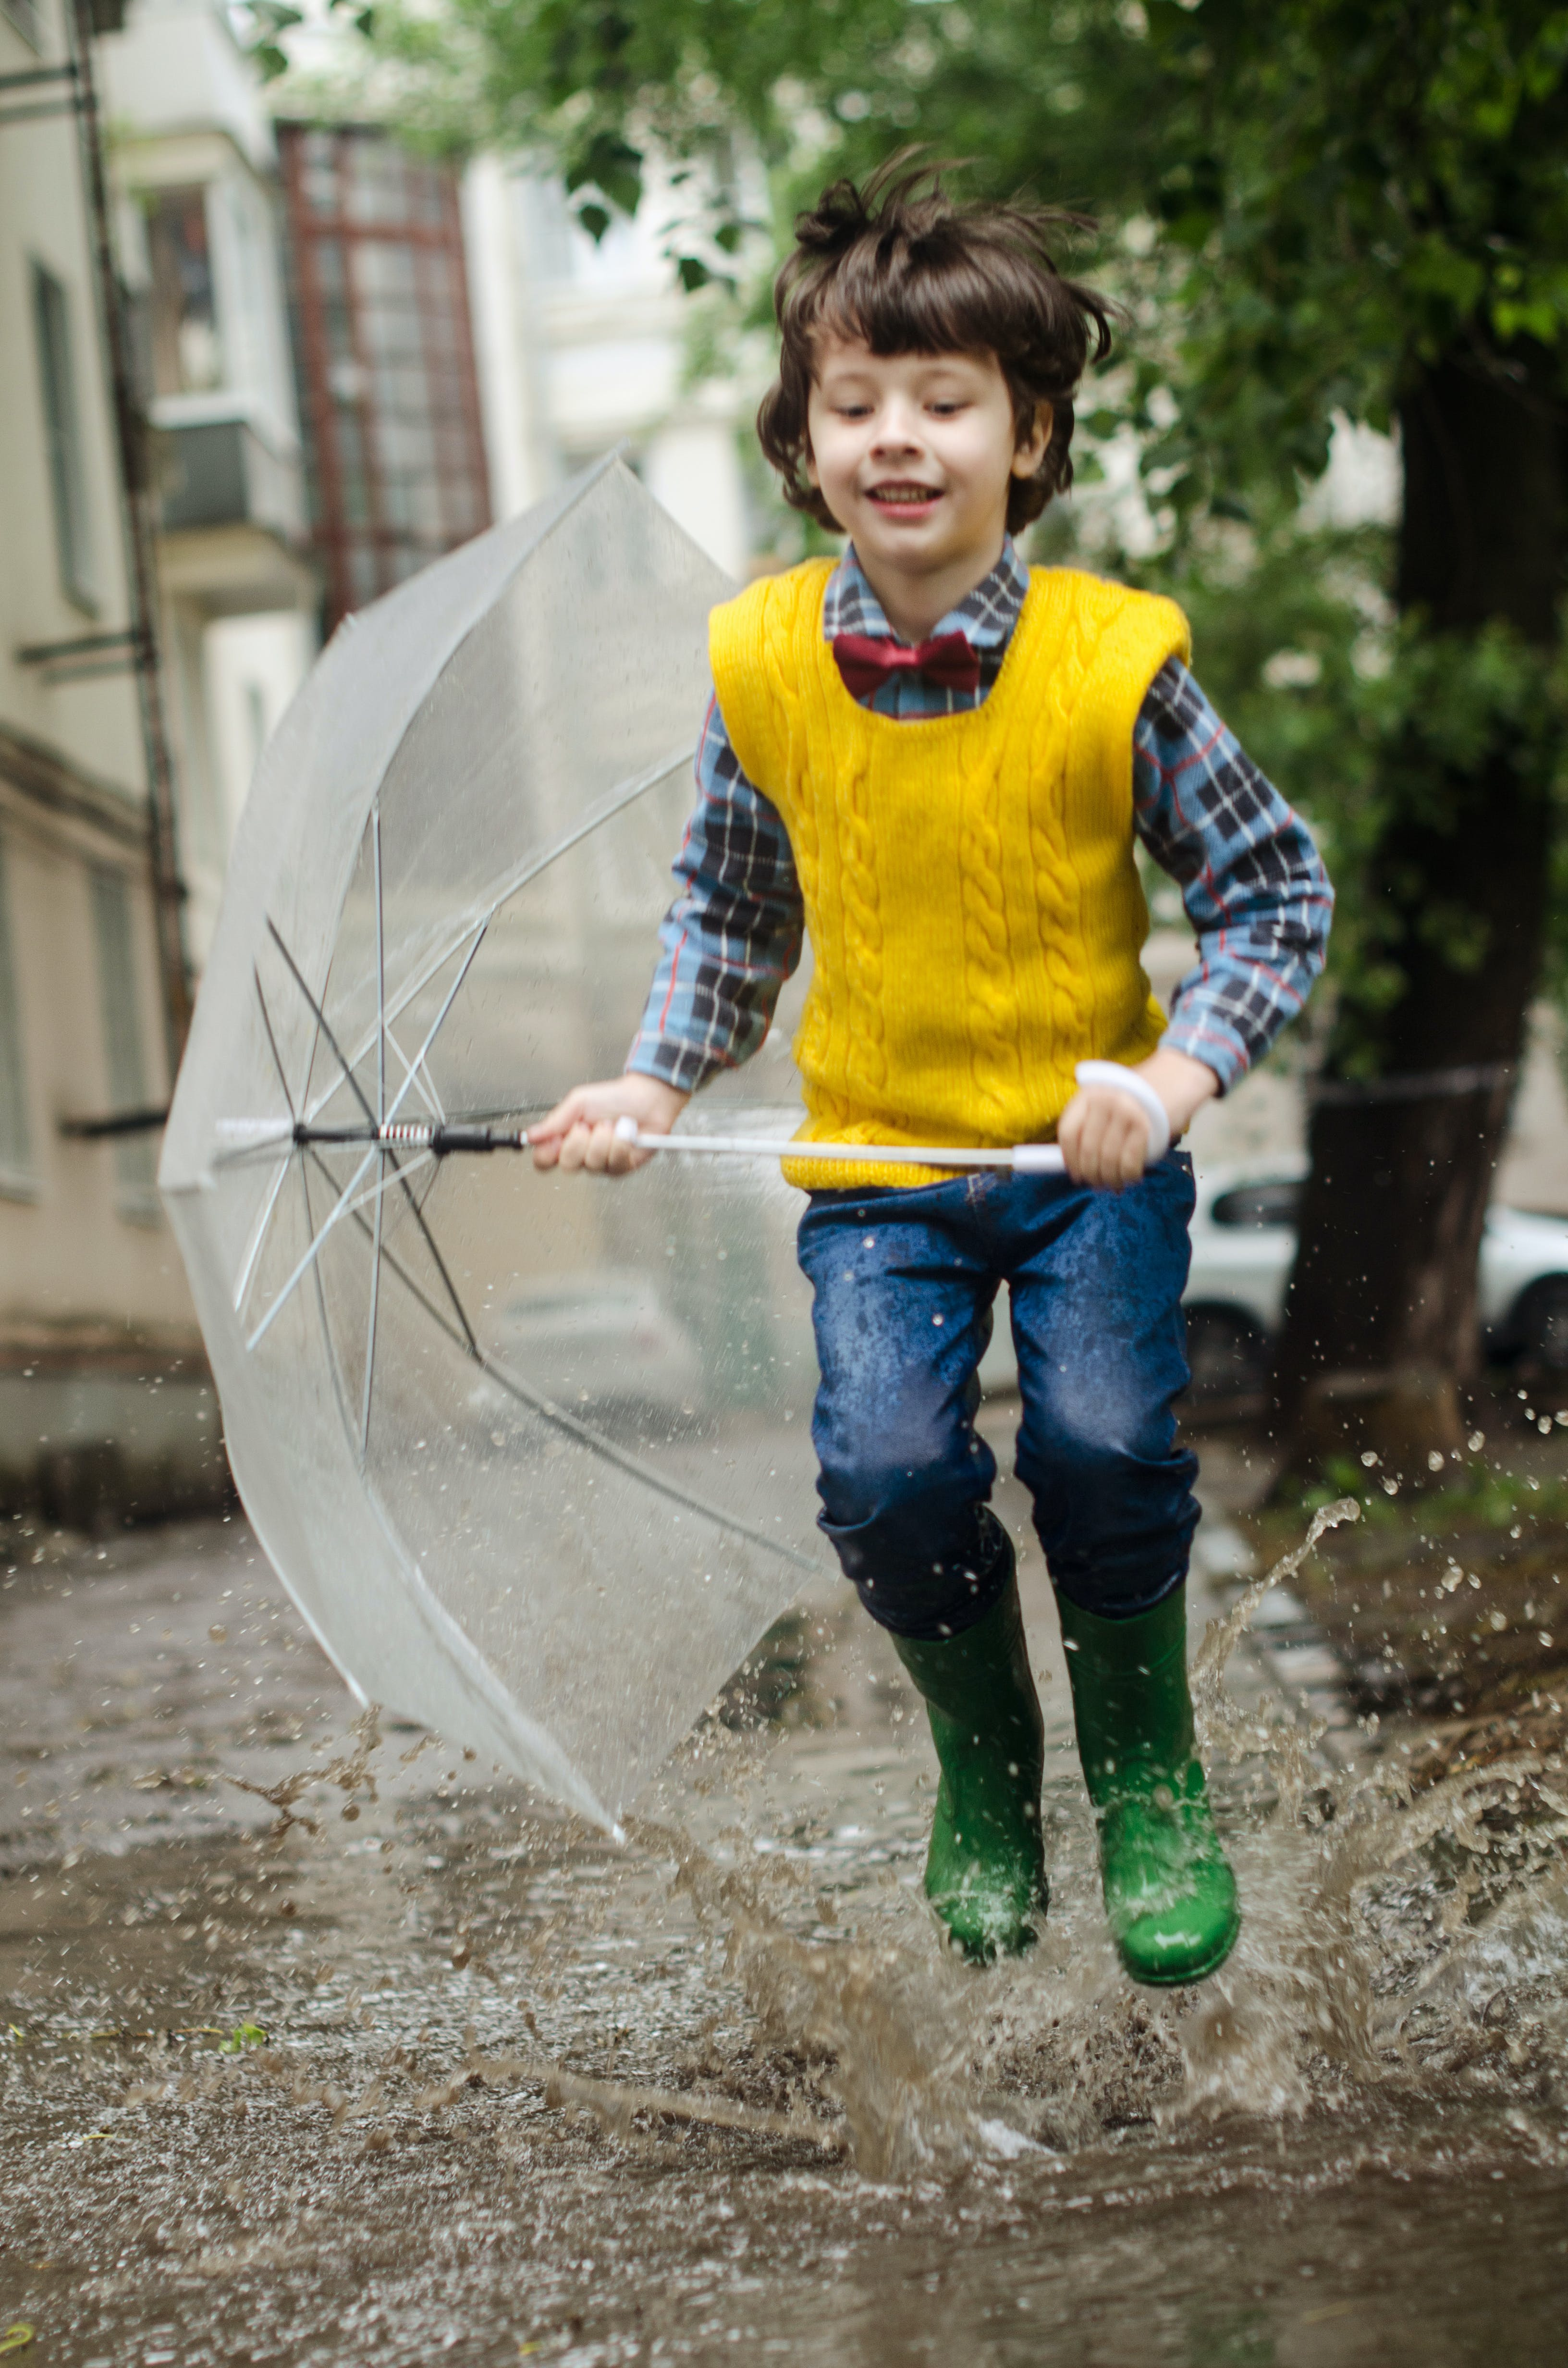 Boy Holding Umbrella While Smiling and Running